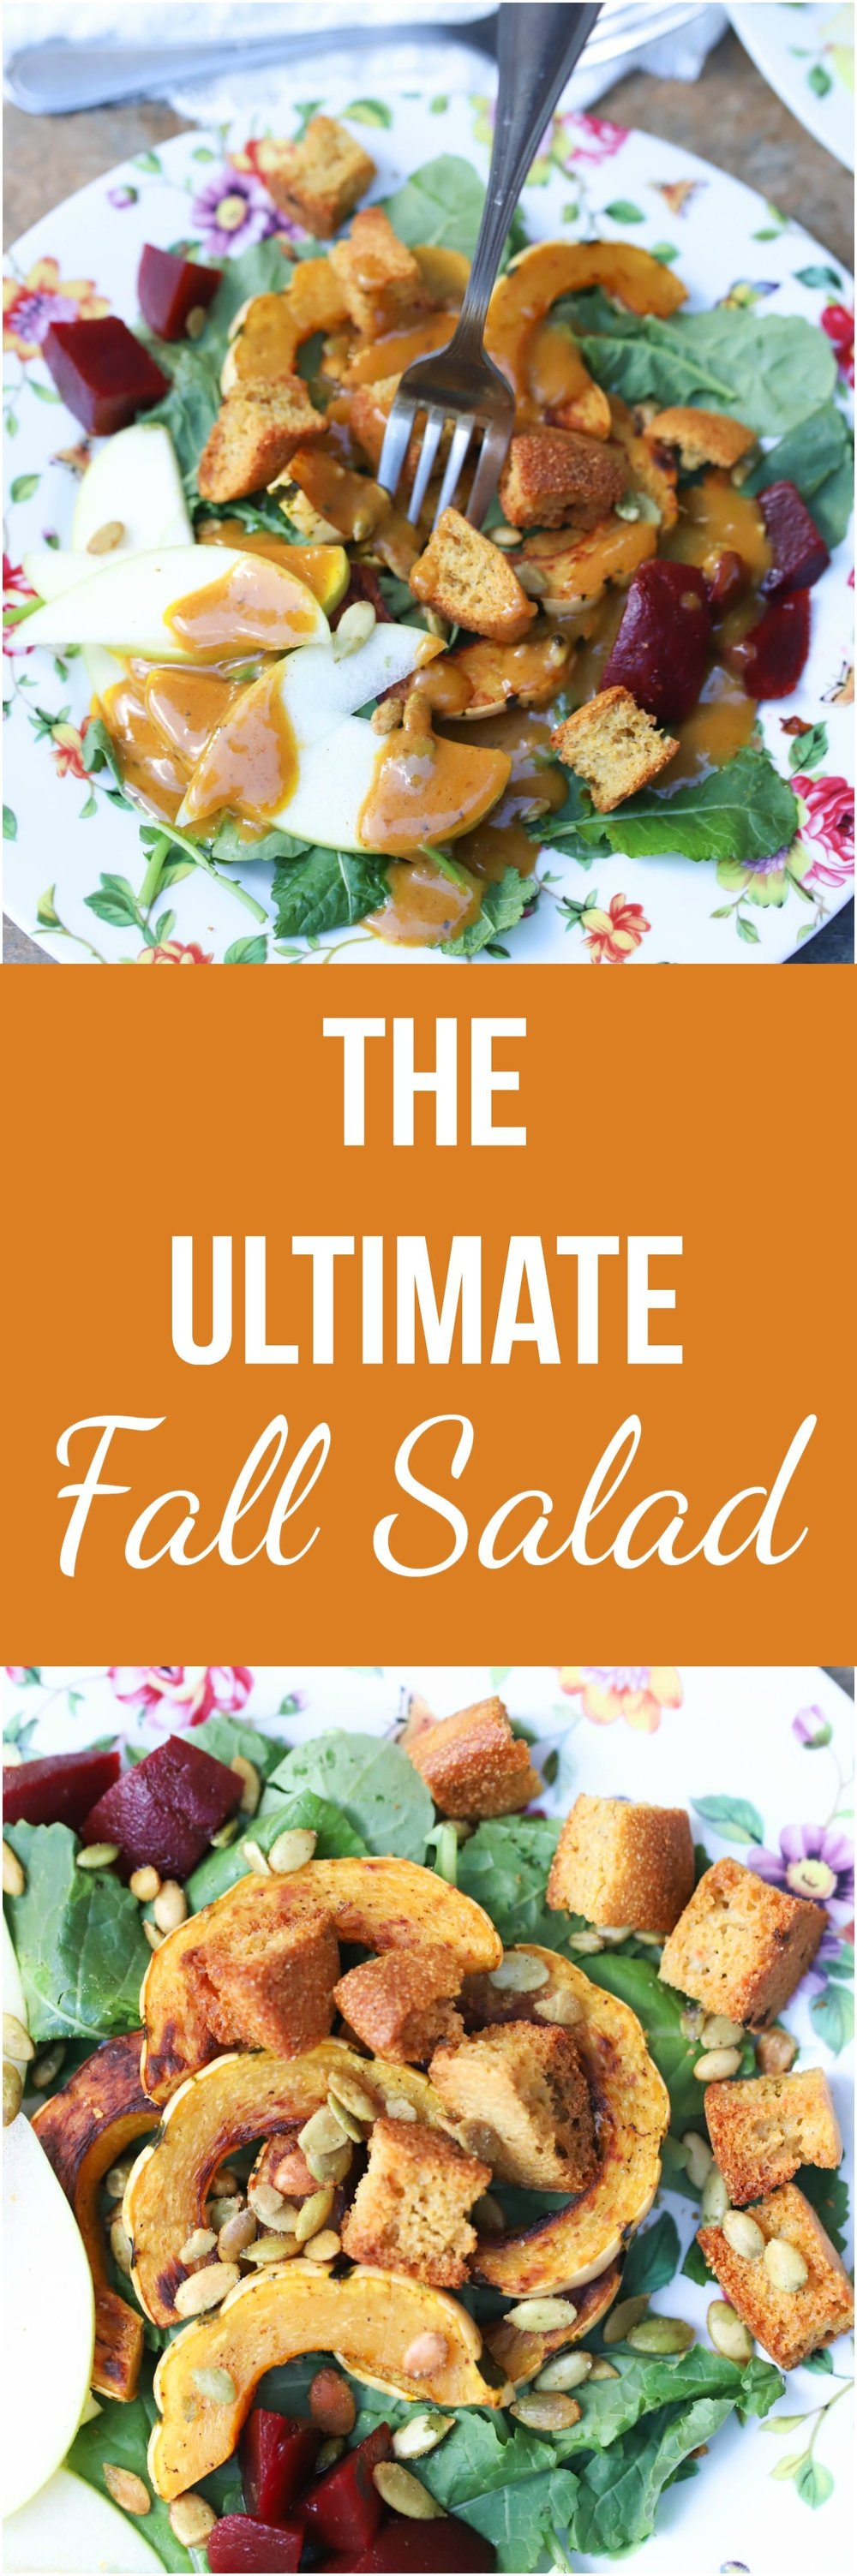 The Ultimate Fall Salad is a hearty, satisfying salad packed with autumn's bounty. It is naturally vegan & gluten-free as well.